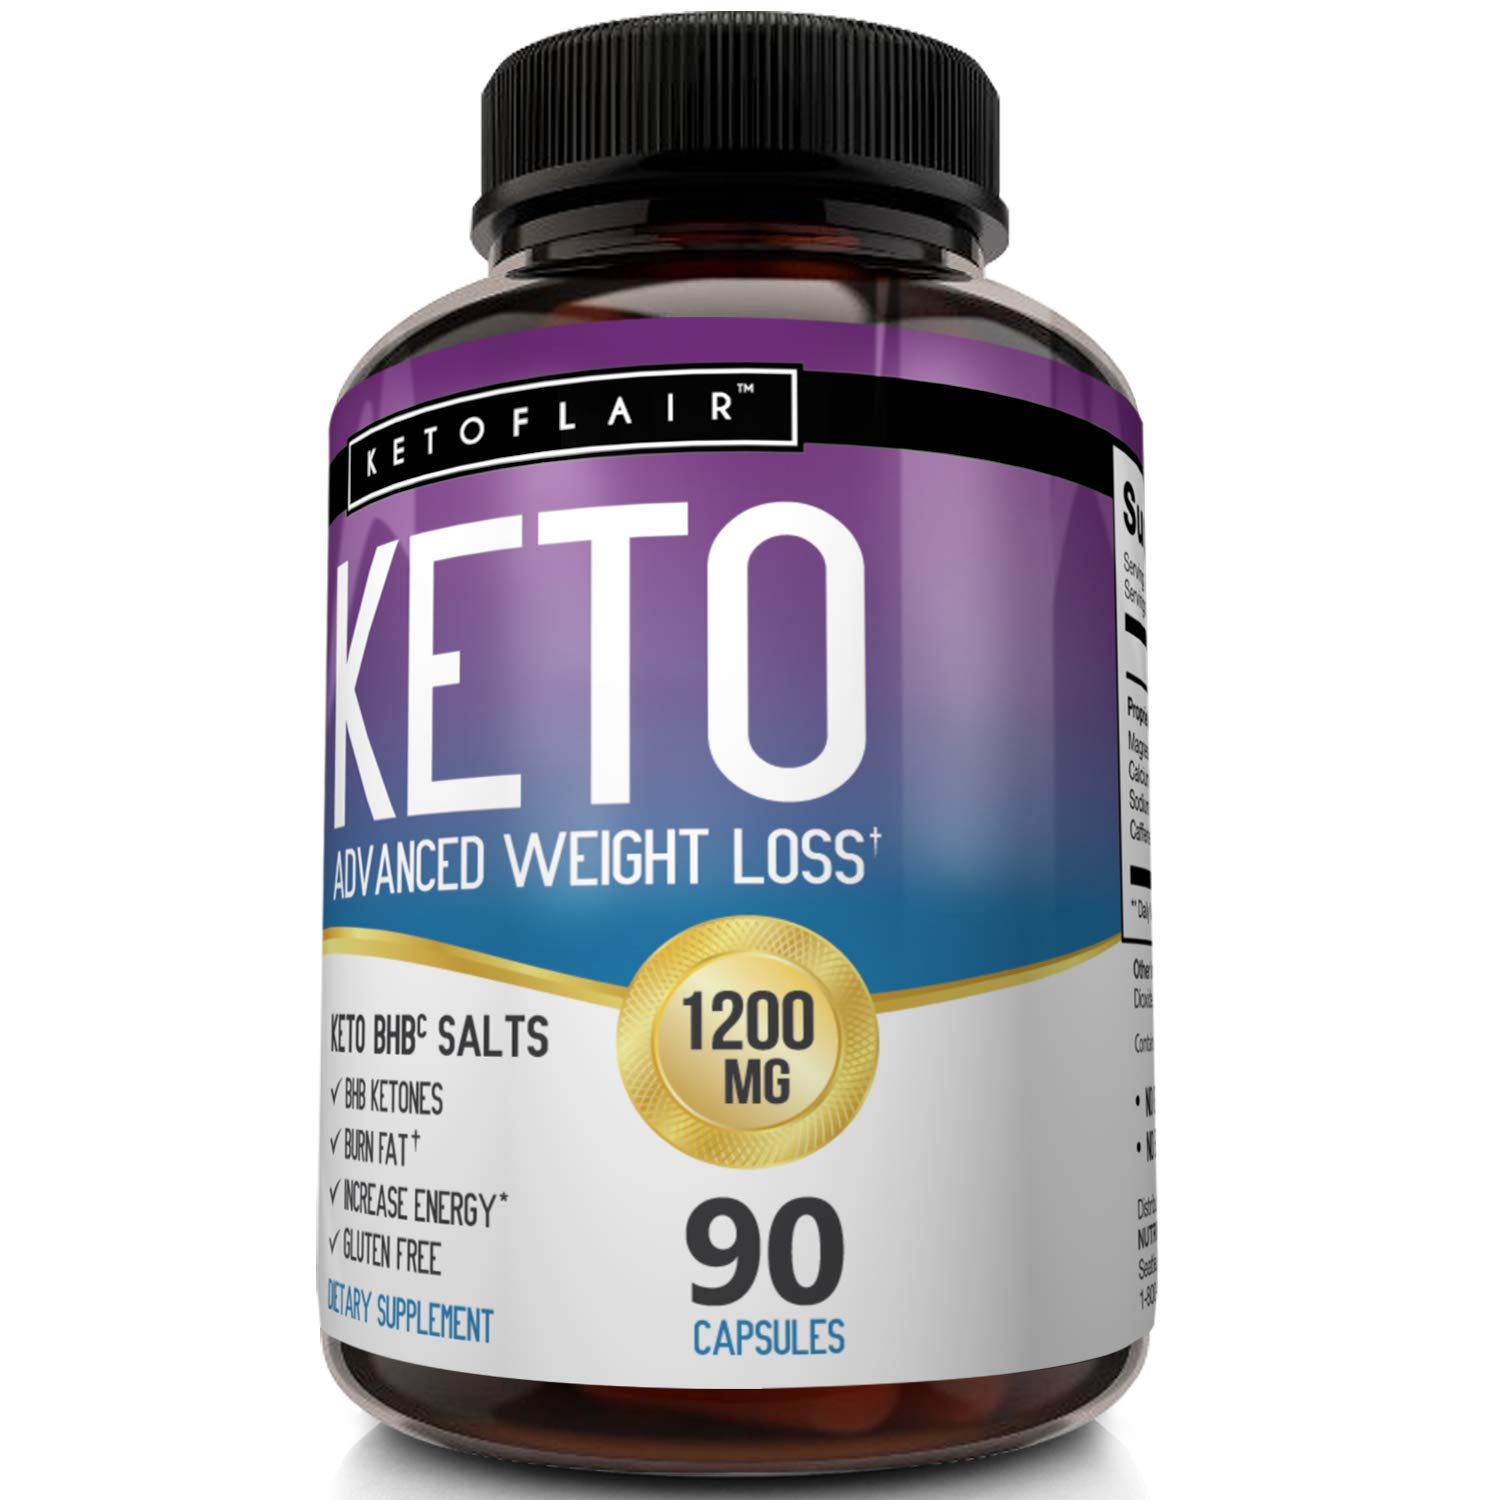 Best Keto Diet Pills GoBHB 1200mg, 90 Capsules Advanced Weight Loss Ketosis Supplement - Natural BHB Salts (beta hydroxybutyrate) Ketogenic Fat Burner, Carb Blocker, Non-GMO - Best Weight Loss Support by NutriFlair (Image #7)